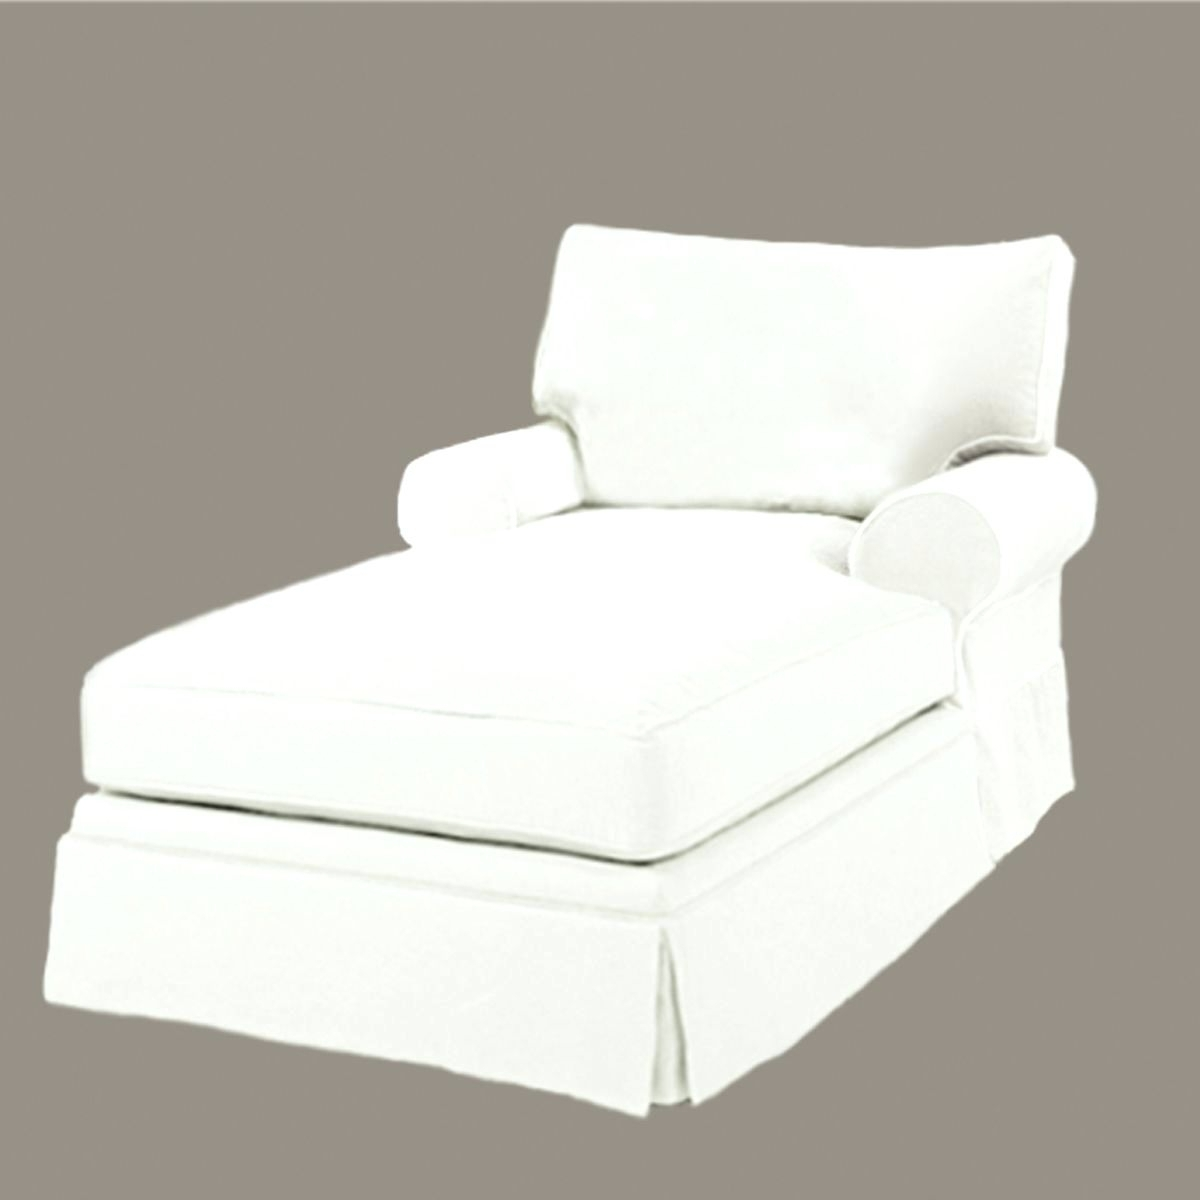 Slipcovesr For Chaise Lounge Inside Preferred Cover For Indoor Chaise Lounge Chair • Lounge Chairs Ideas (View 10 of 15)